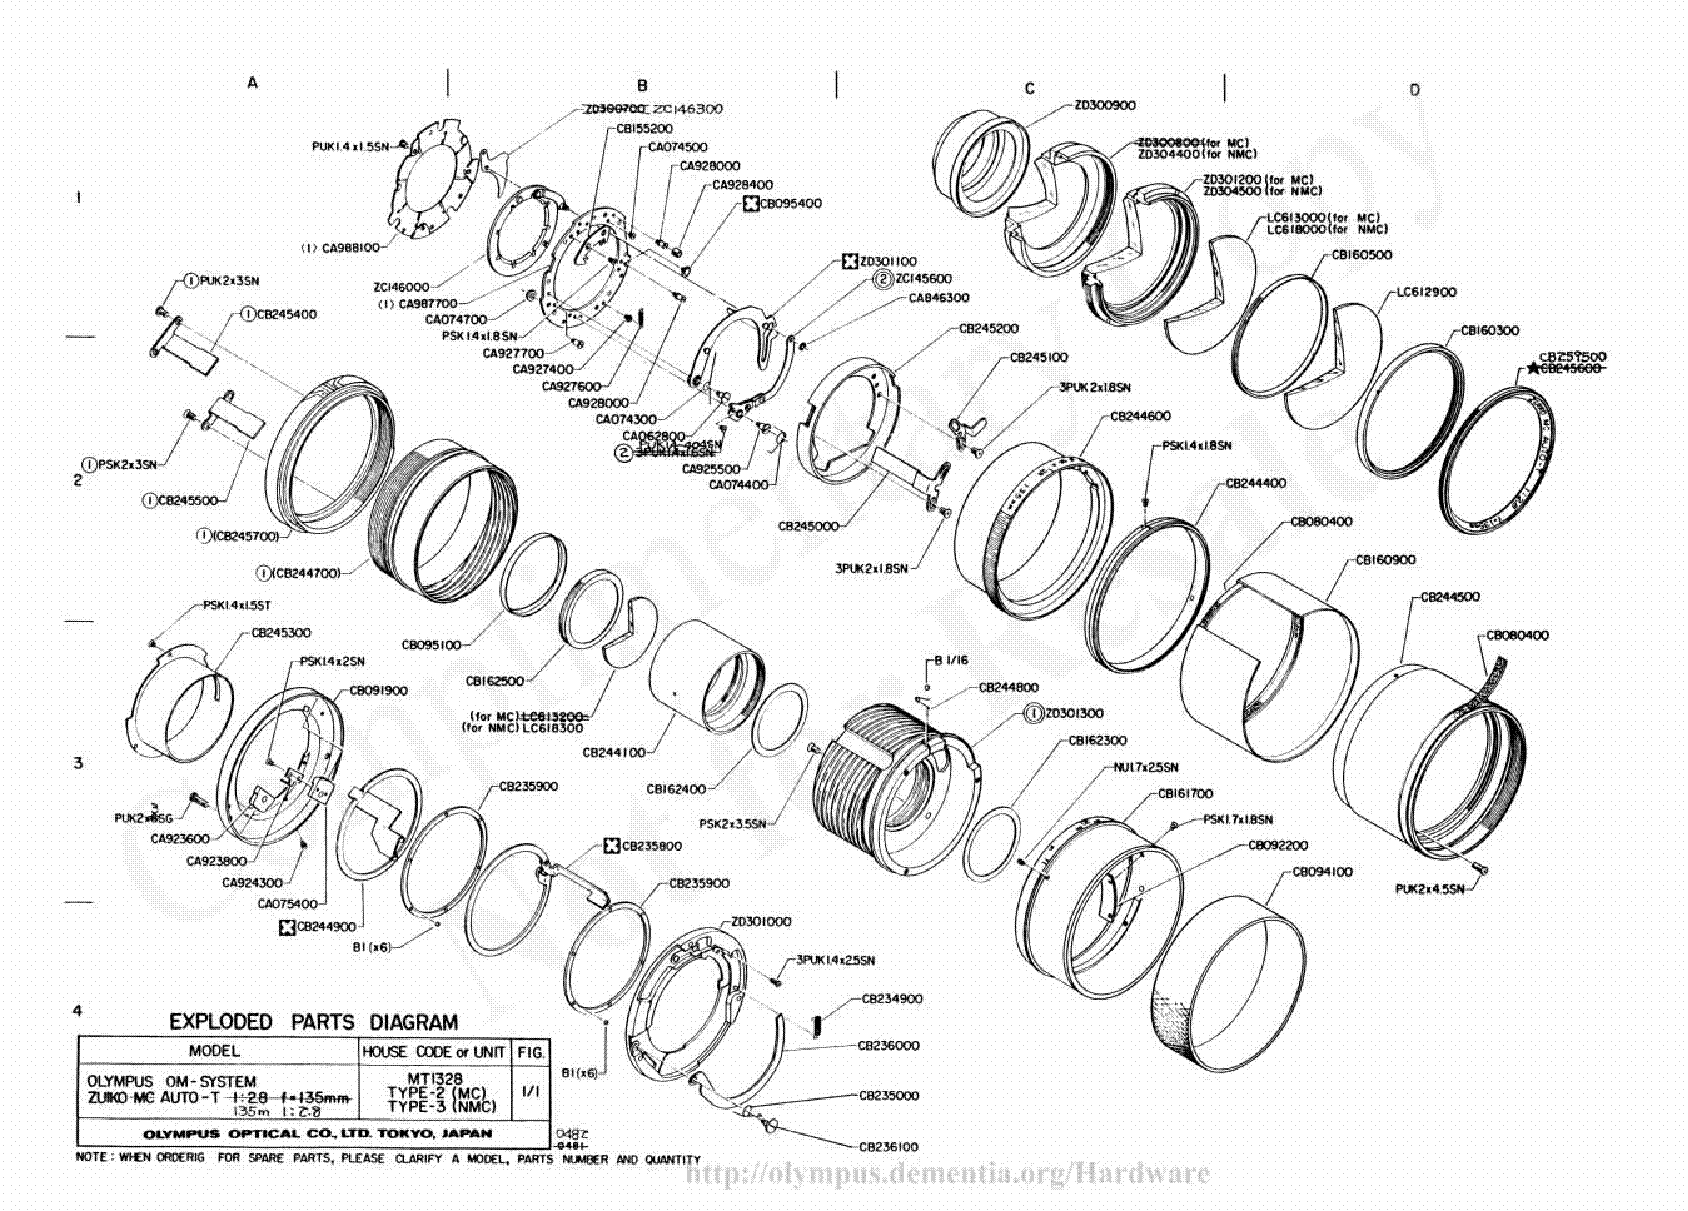 OLYMPUS 135MM F2.8 EXPLODED PARTS DIAGRAM Service Manual